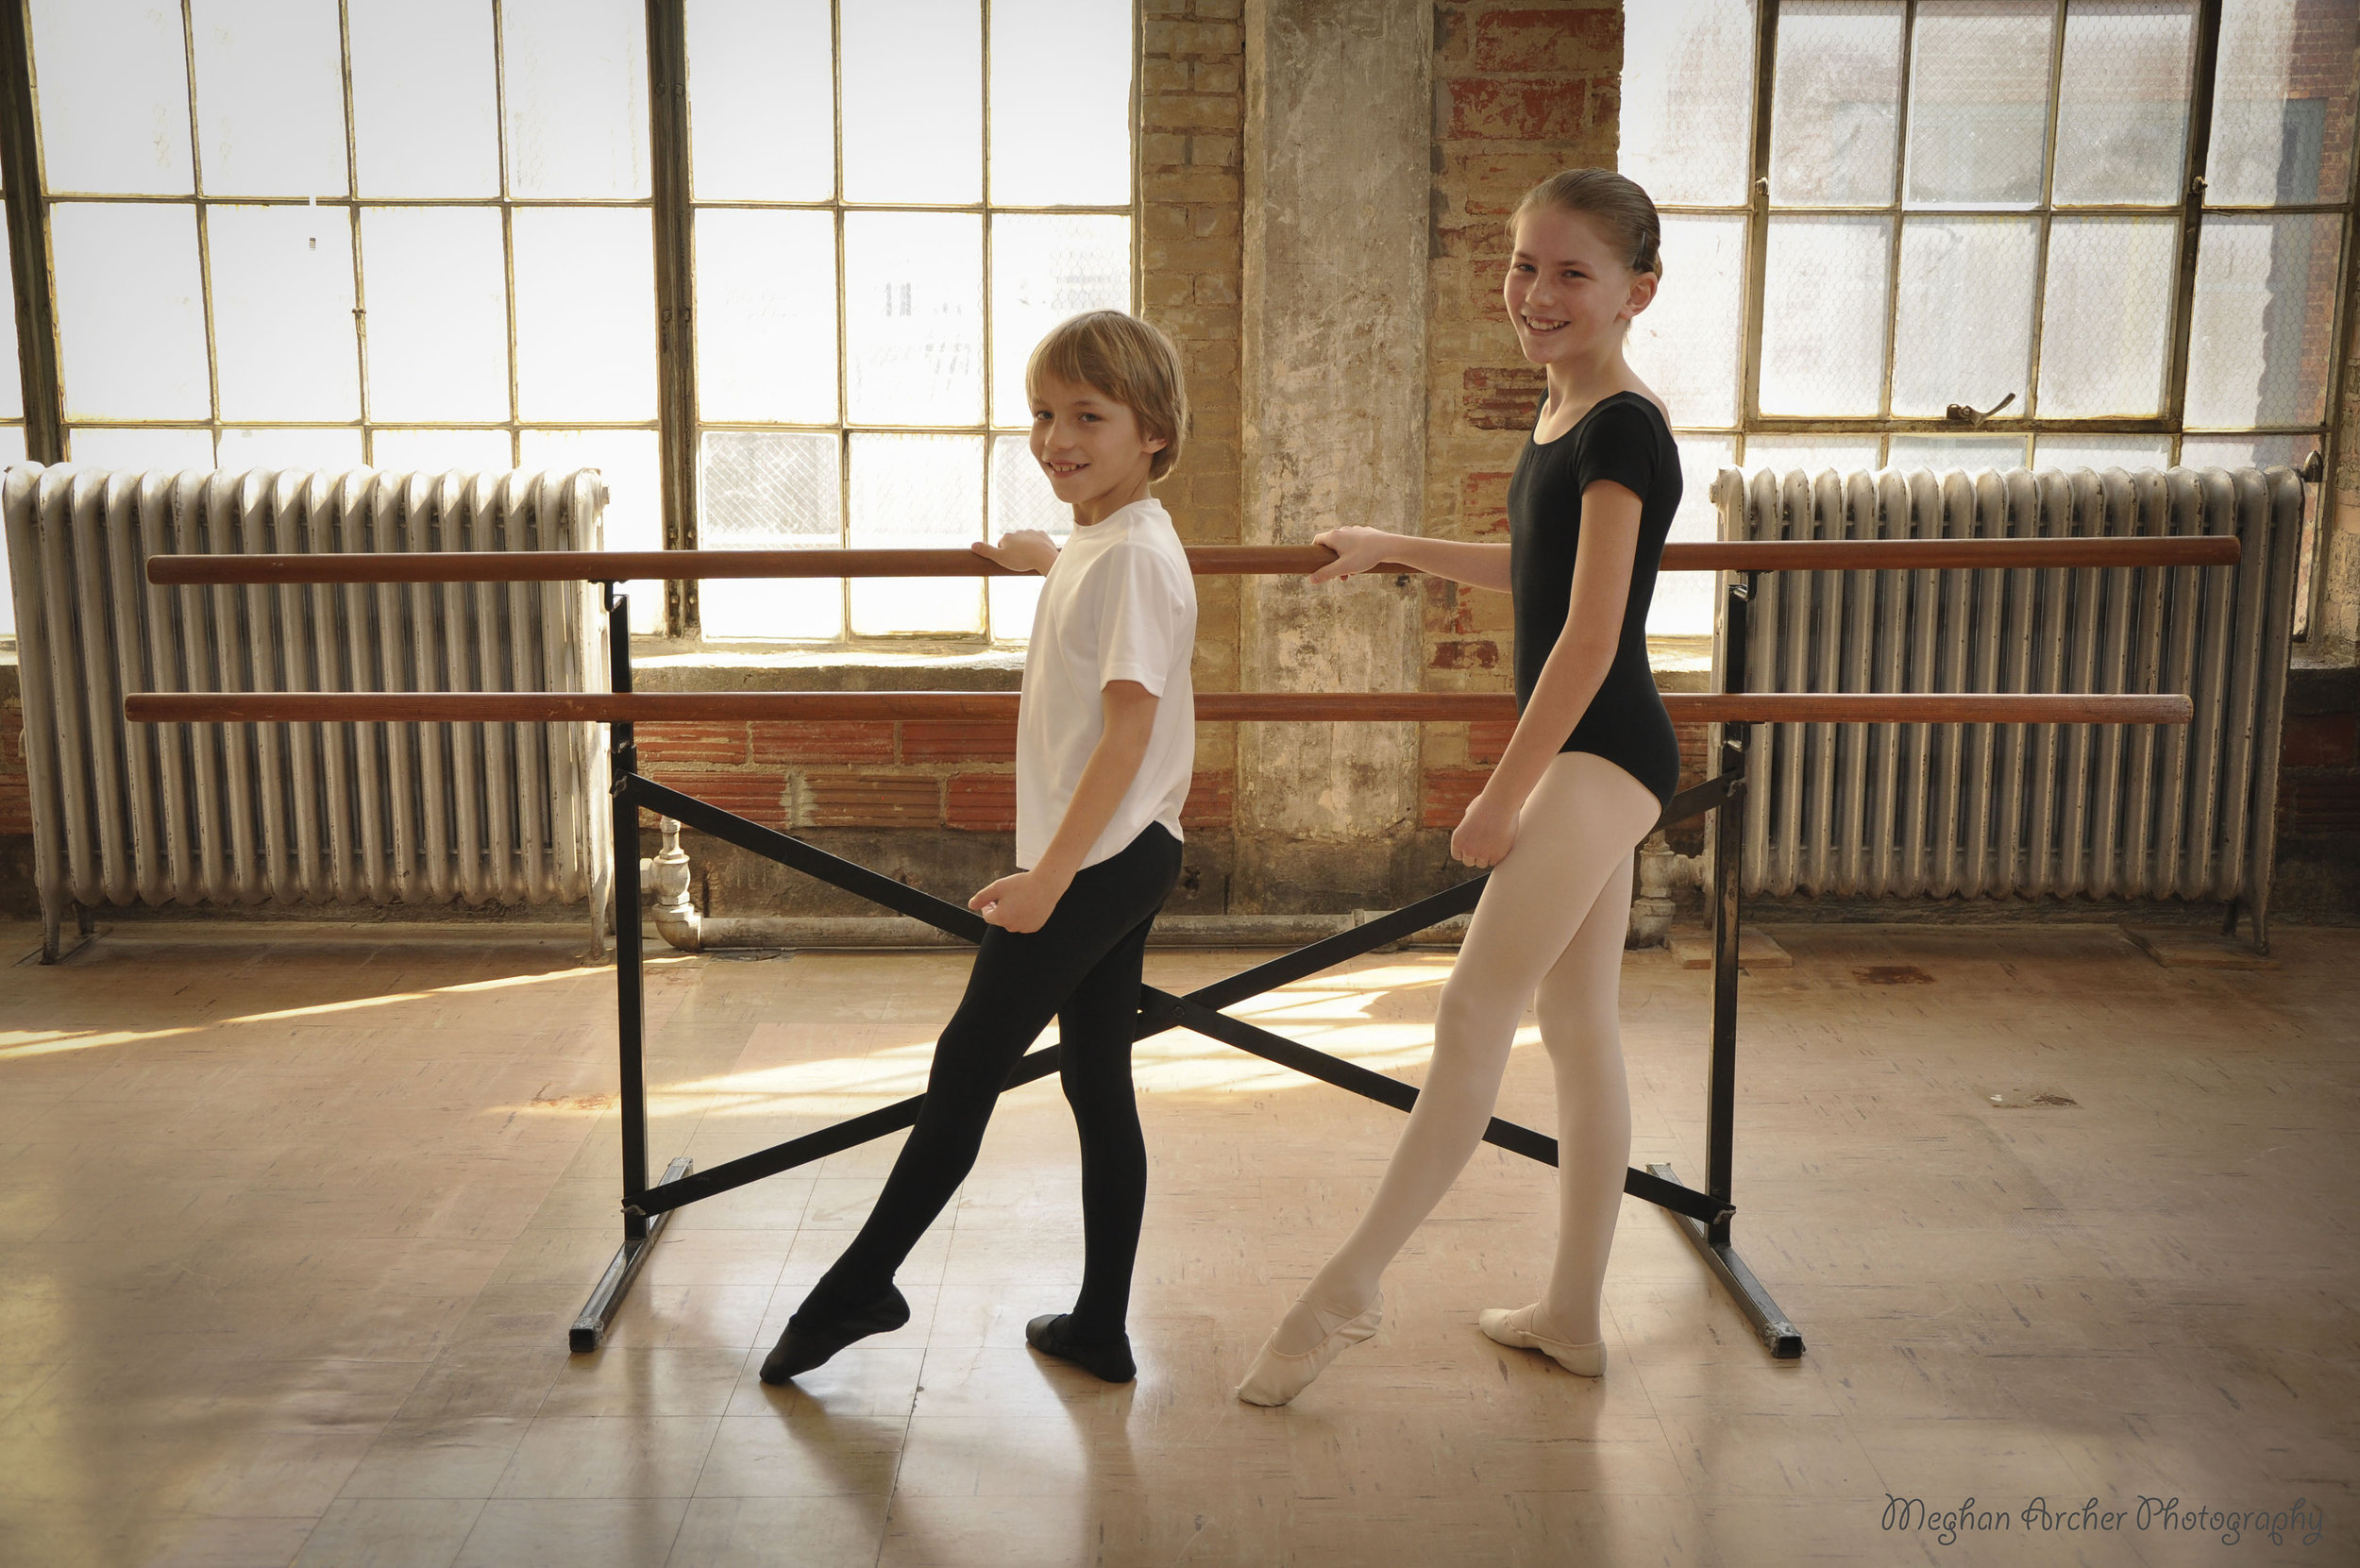 Pre grade I for 8 & 9 year olds - This curriculum is geared towards 8-9 year olds as preparation for beginning a more intense ballet program, the Cecchetti program. Students will begin learning terminology, and theory used throughout the Cecchetti program. There is a heavy emphasis on proper body posture and boy alignment, feet and arm positions, and a basic understanding and love of classical music. Pre Grade I follows the Primary III syllabus developed by the Cecchetti Council of America.CLASS LENGTH1 Hour & 15 Minutes